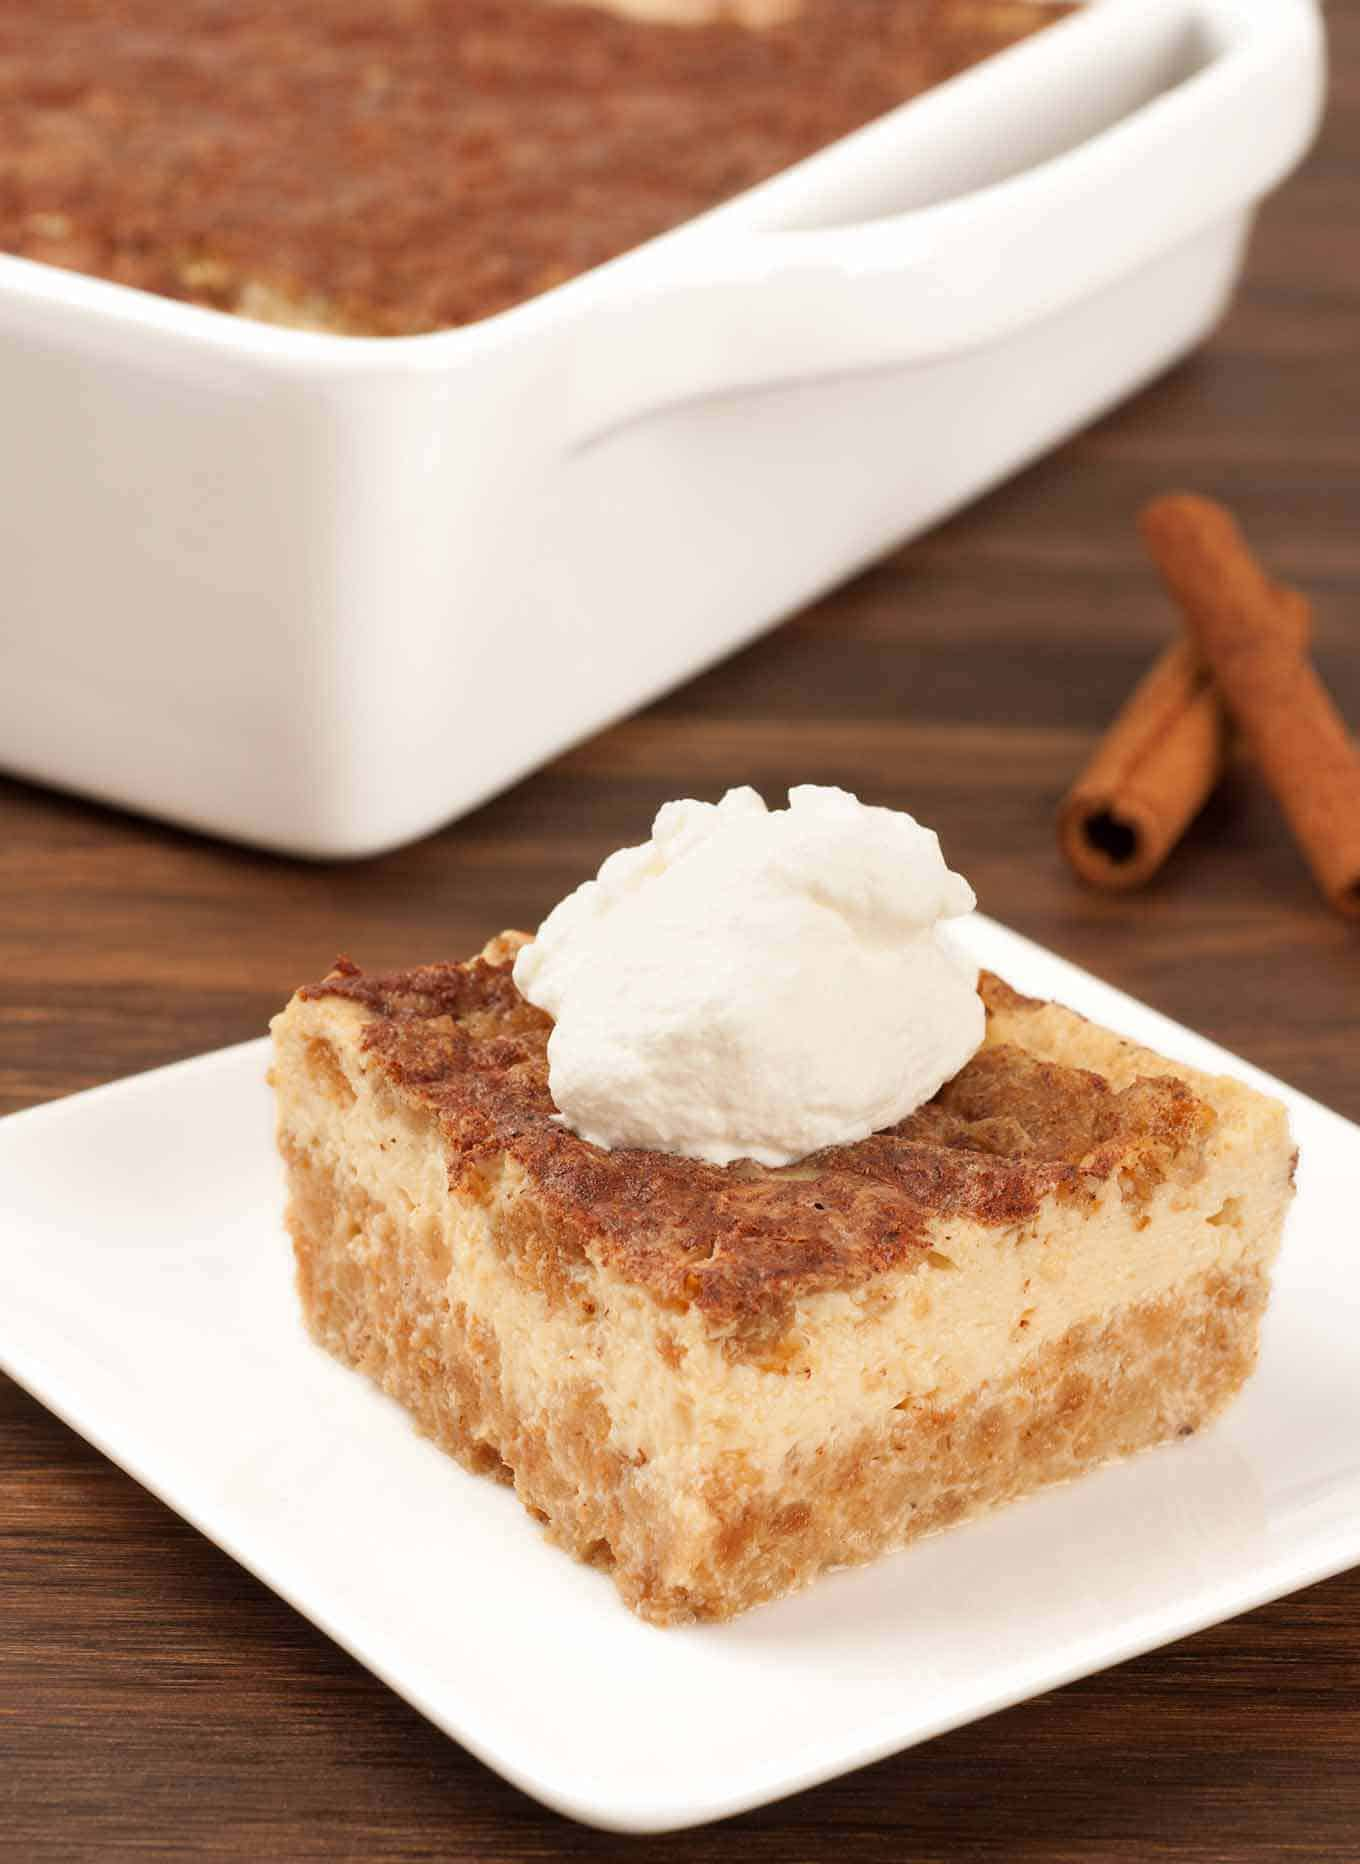 A thick slice of Grape Nut pudding showing the soft cereal crust on the bottom and creamy custard layer on top.